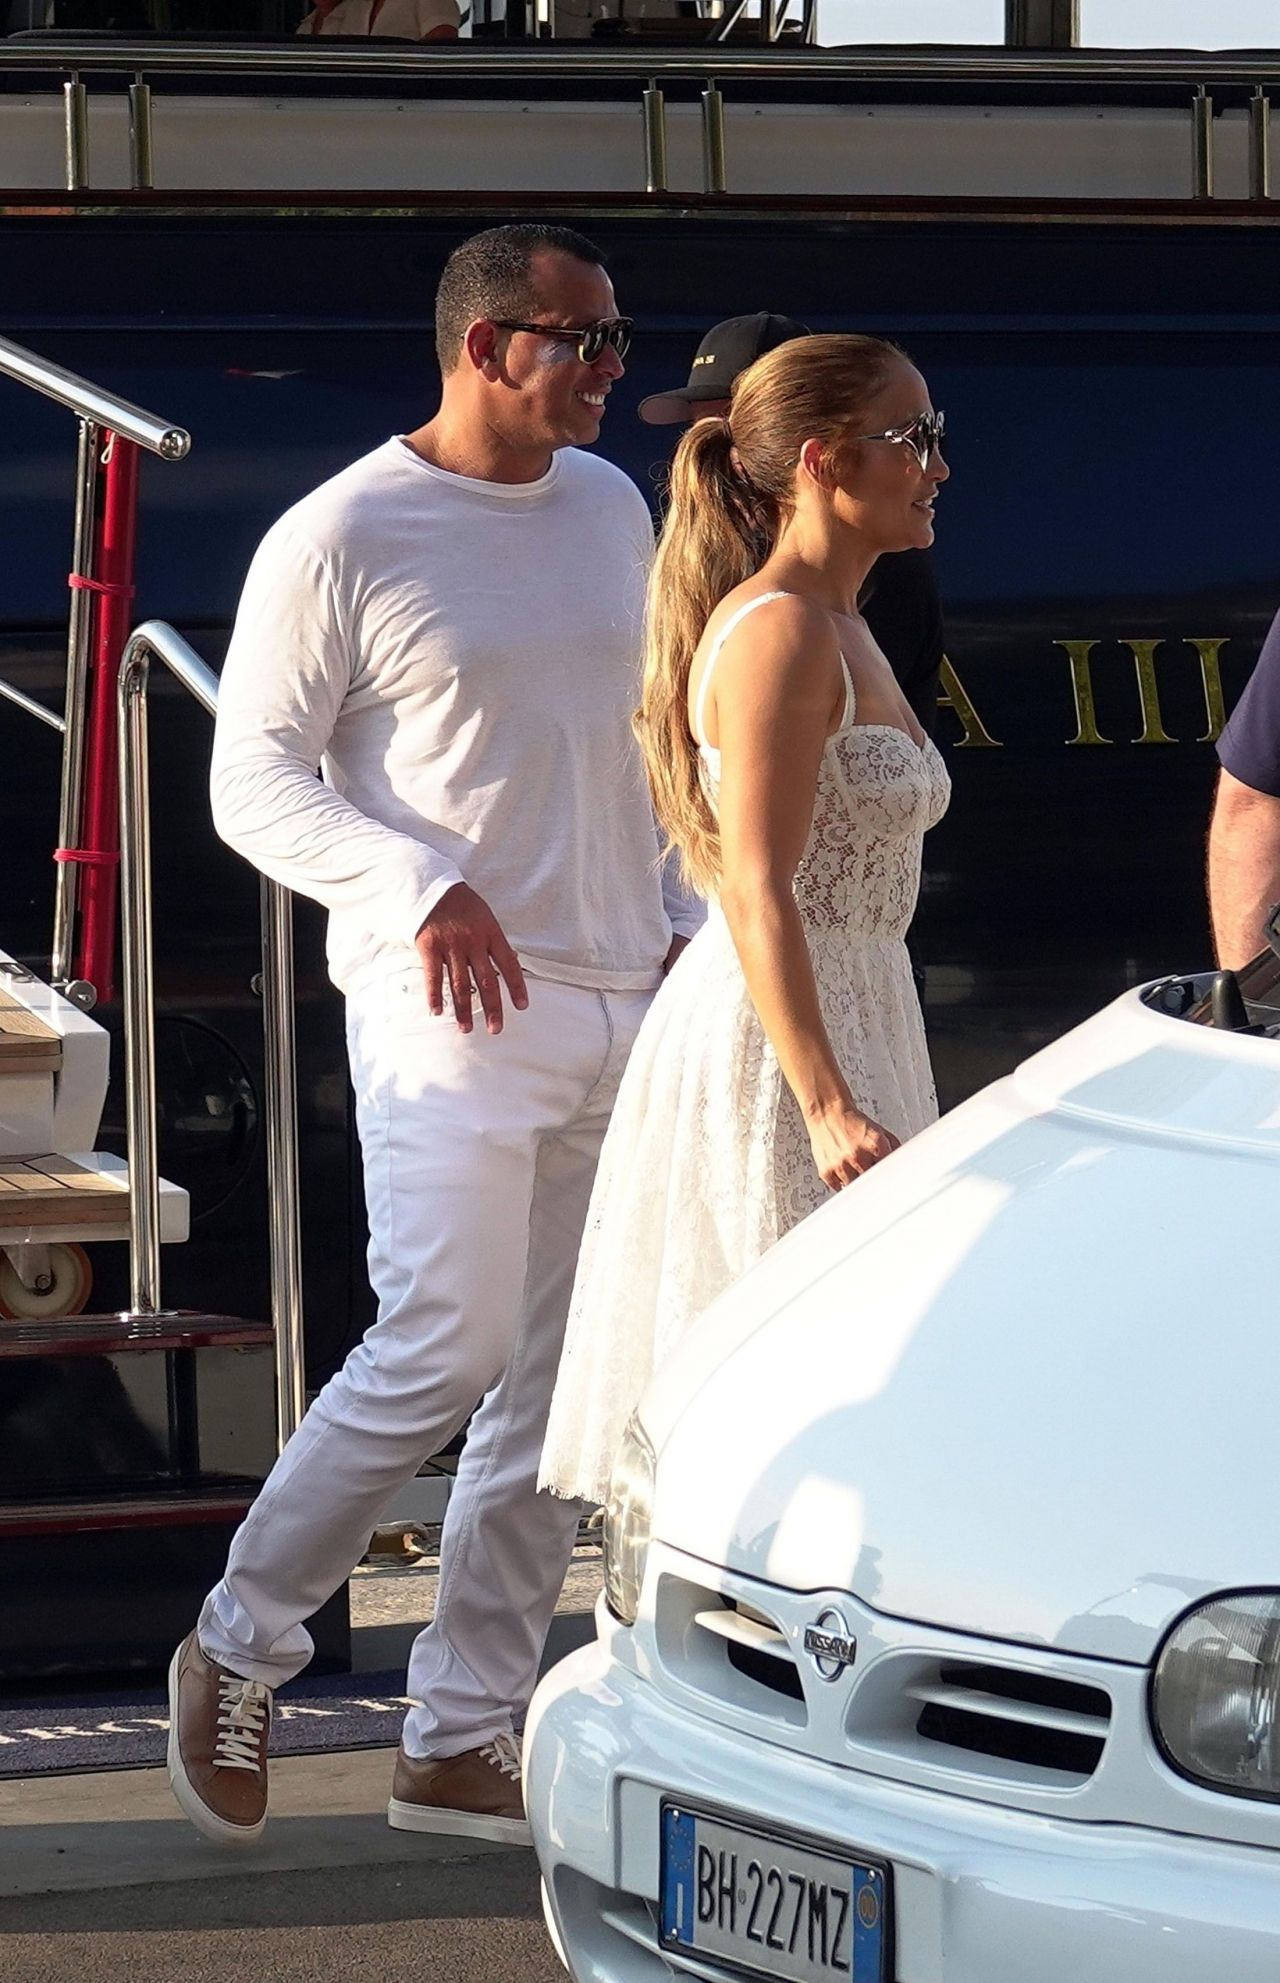 jennifer-lopez-and-alex-rodriguez-on-their-luxury-yacht-in-capri-08-07-2018-9.jpg